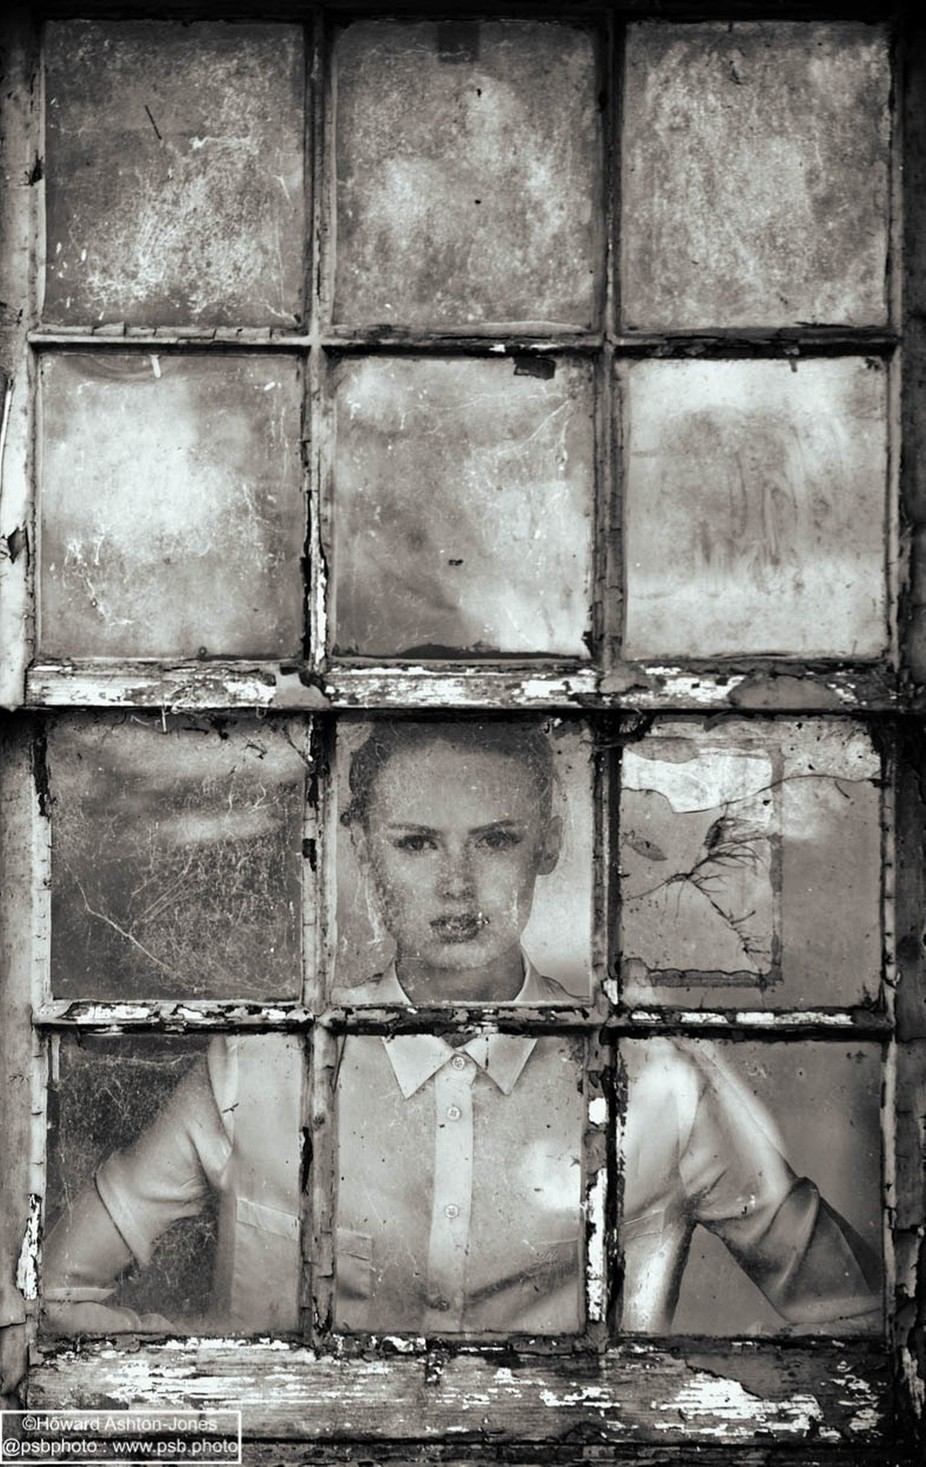 Girl in the Window by howardashton-jones - Once Upon A Time Photo Contest